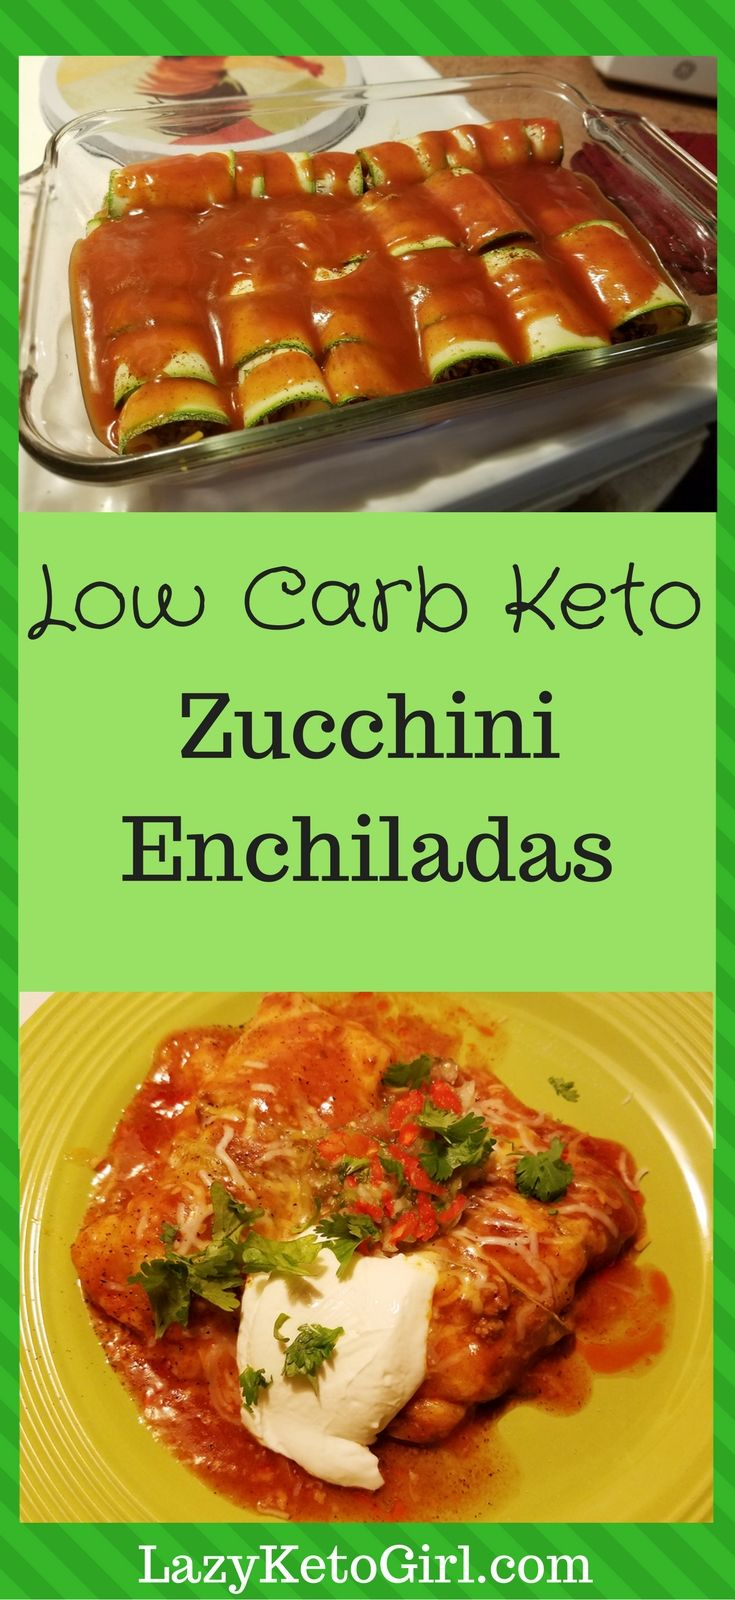 Low Carb Keto Zucchini Enchiladas for the Low Carb or Ketogenic Diet. Delicious & Easy! #ketodietplan